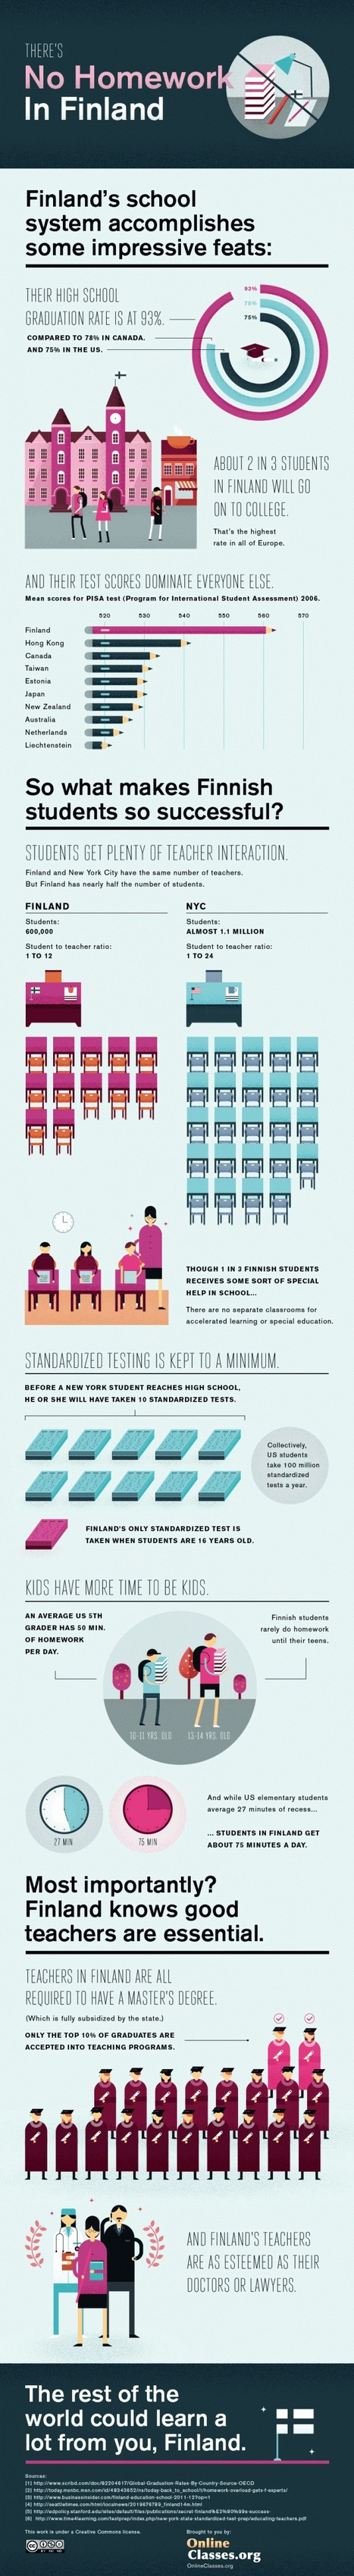 What You Should Know About Education In Finland - Infographic | Banco de Aulas | Scoop.it